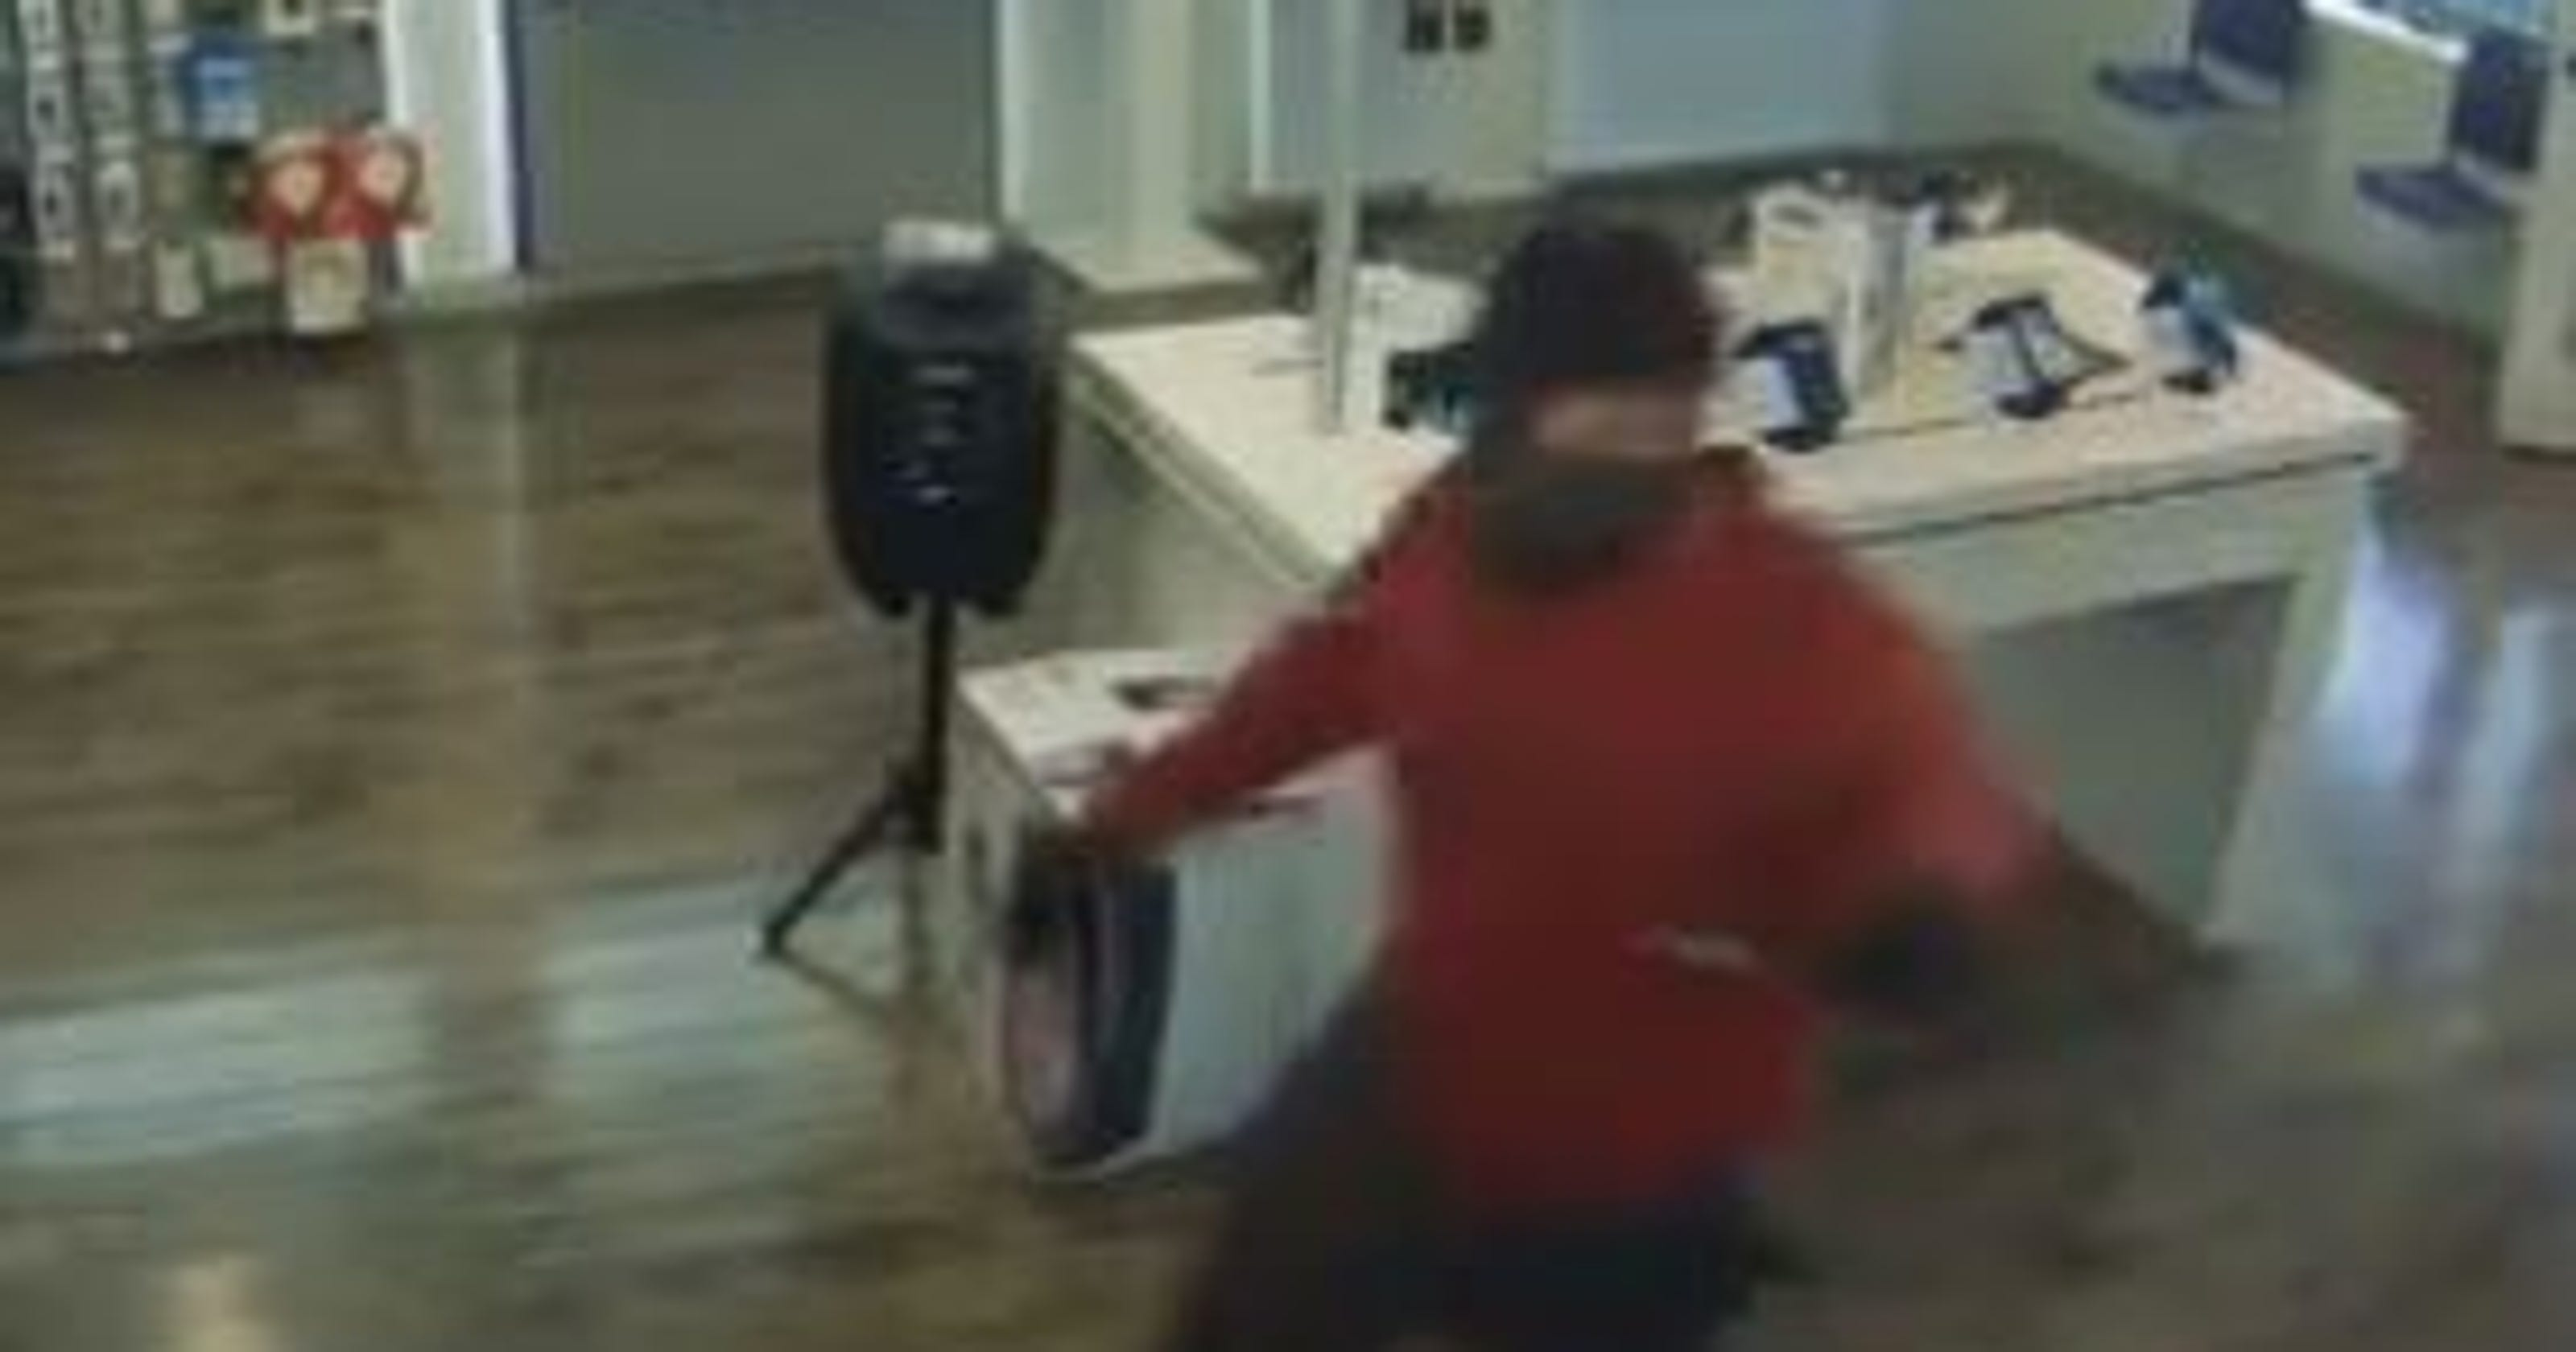 Video shows armed robbery of Chandler MetroPCS